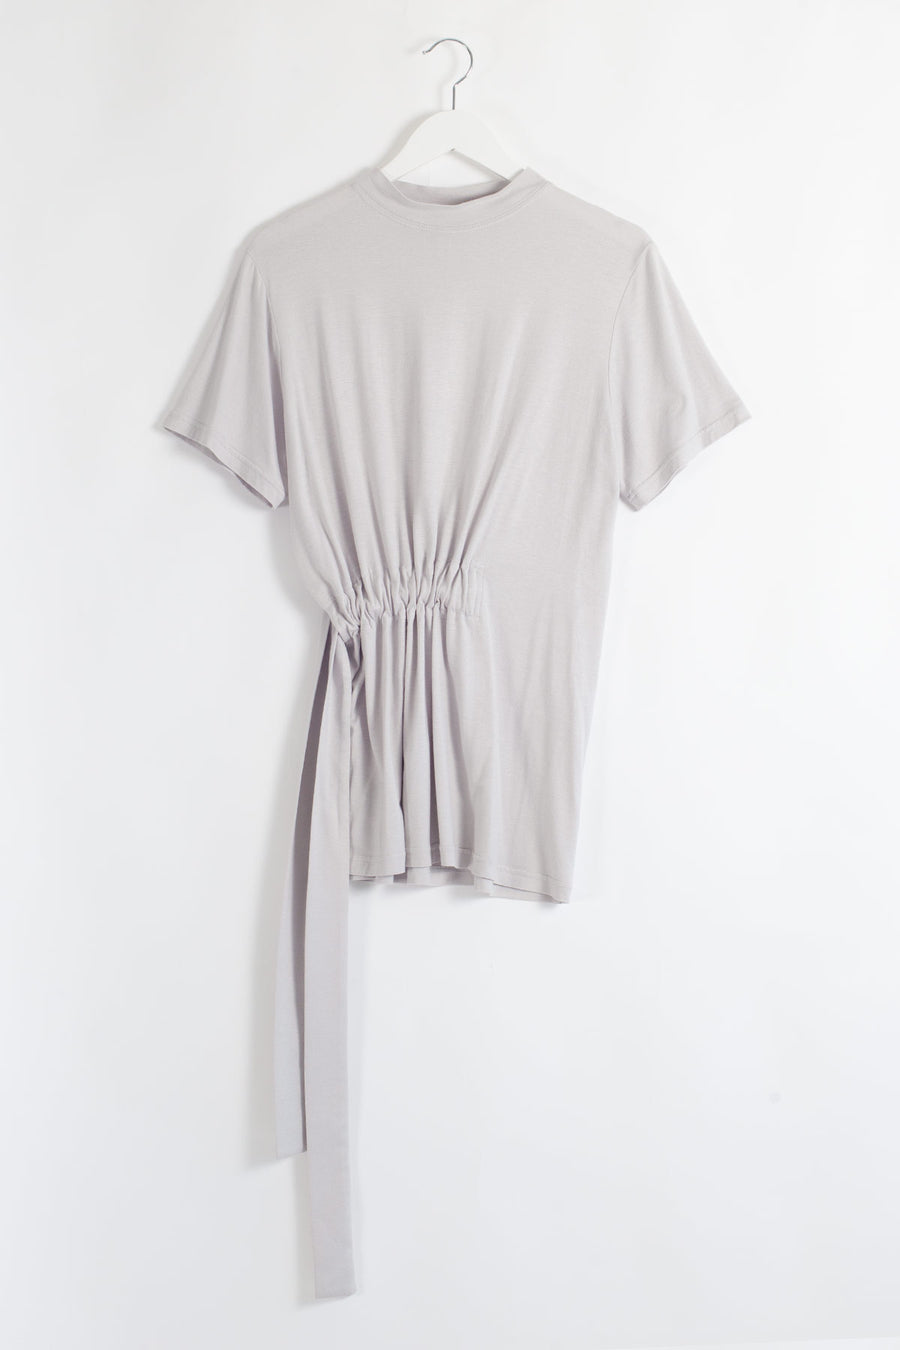 BAMBOO Belted Mock Neck Top - Grey